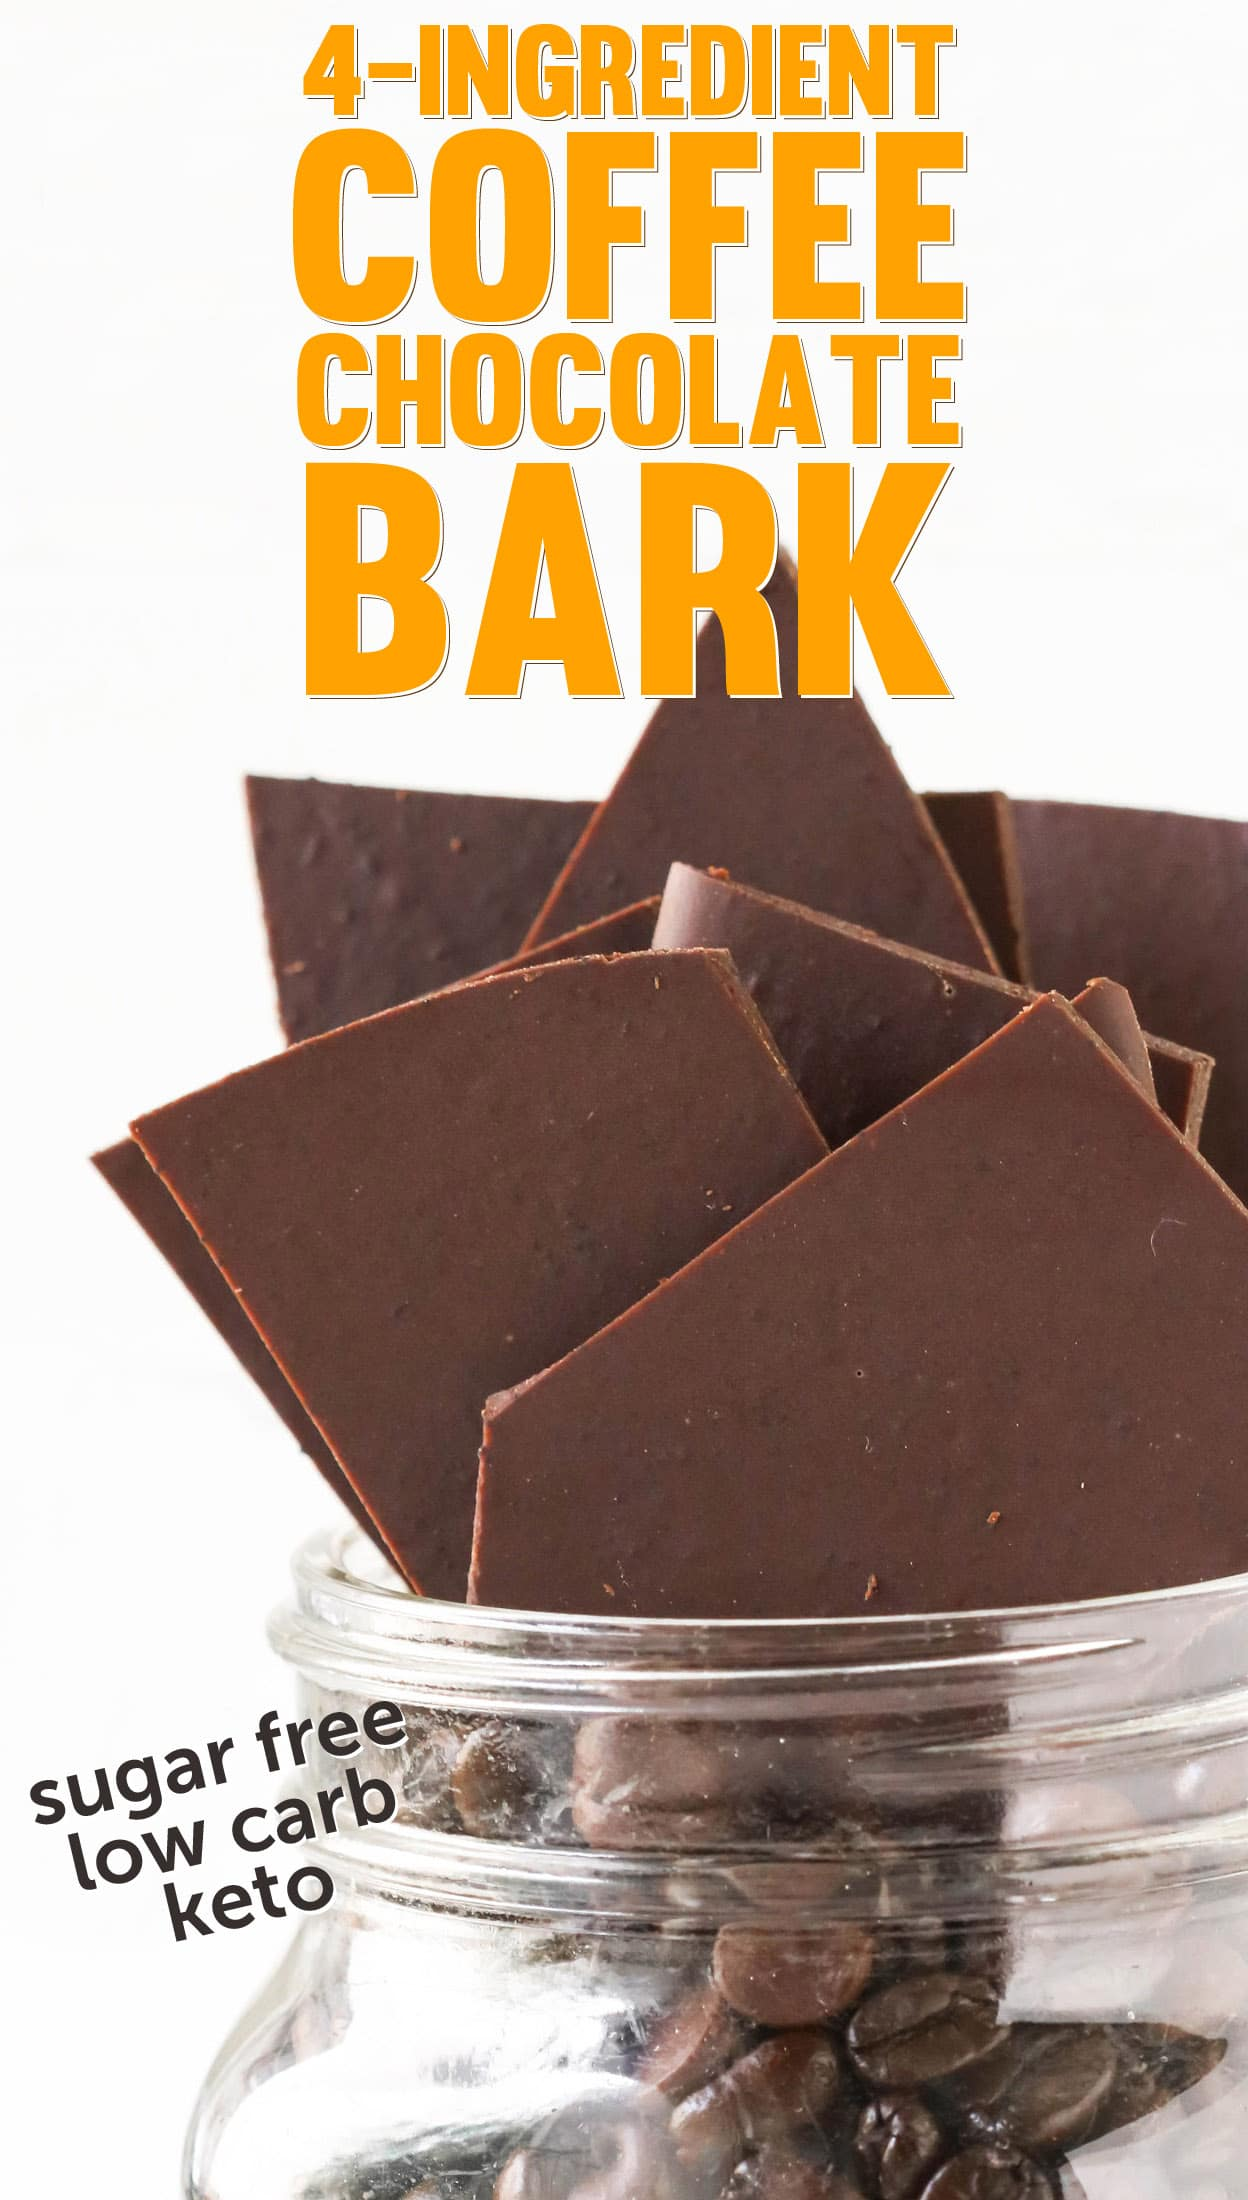 Easy Healthy Coffee Chocolate Bark Candy (sugar free, low carb, keto)